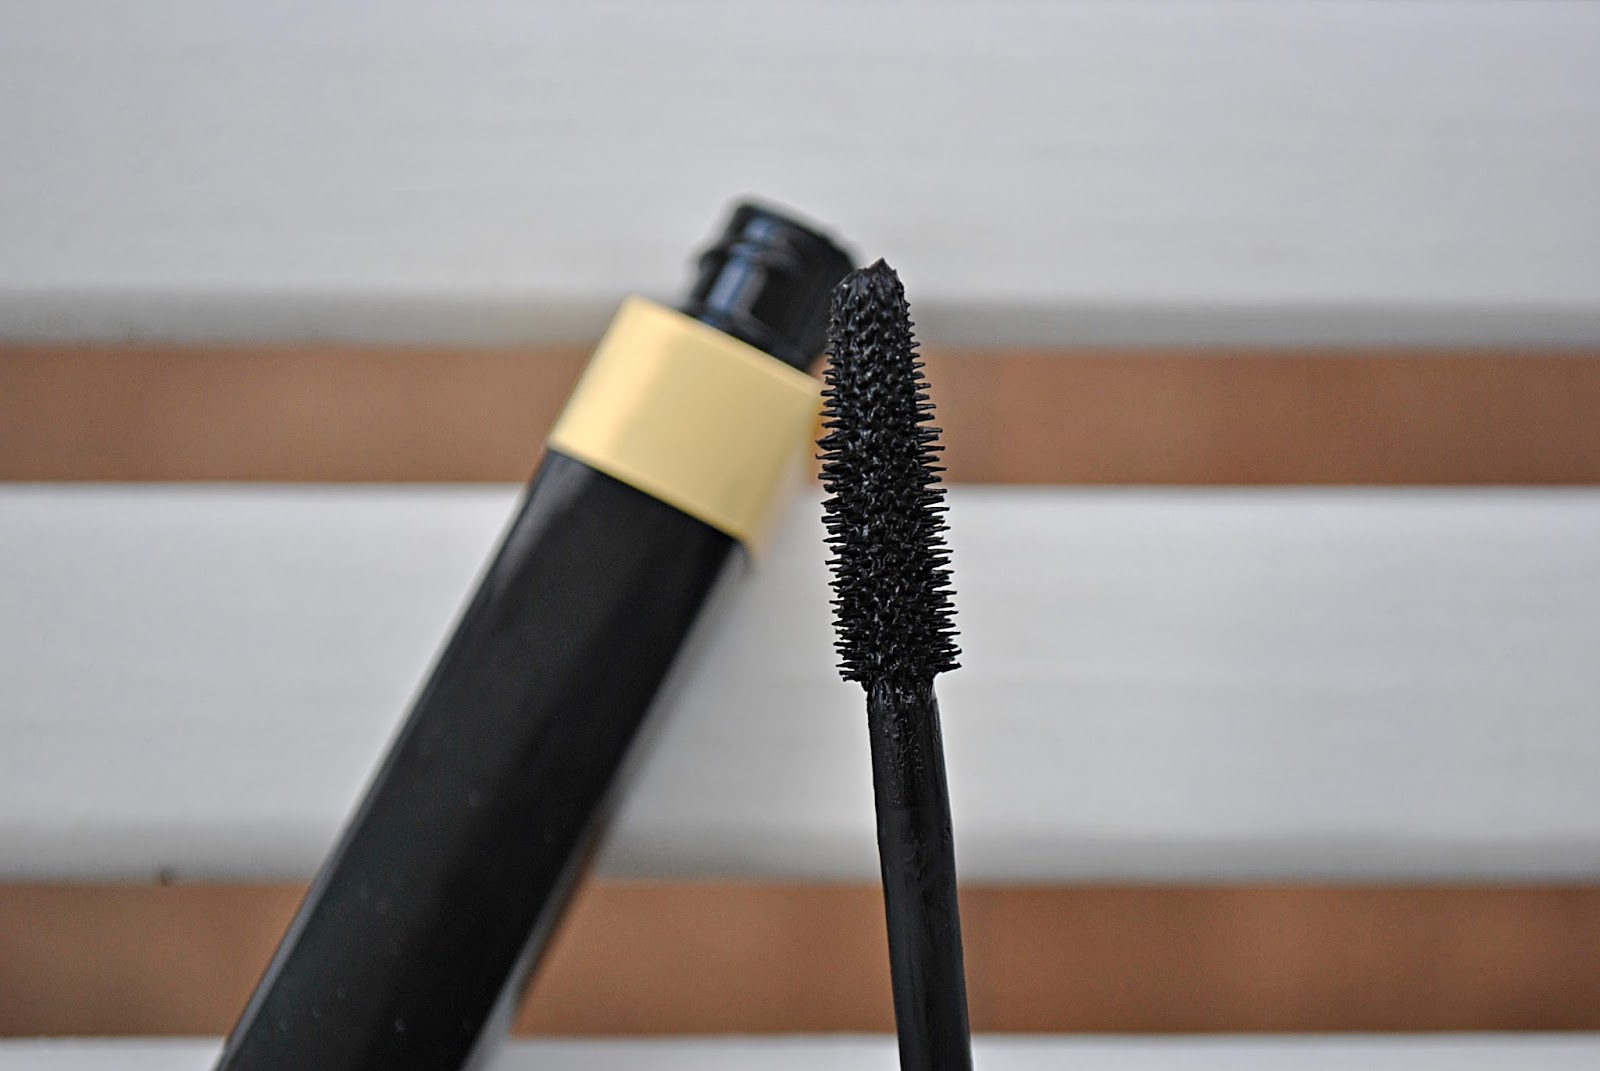 MOI ULUBIEŃCY - CHANEL INIMITABLE INTENSE MASCARA